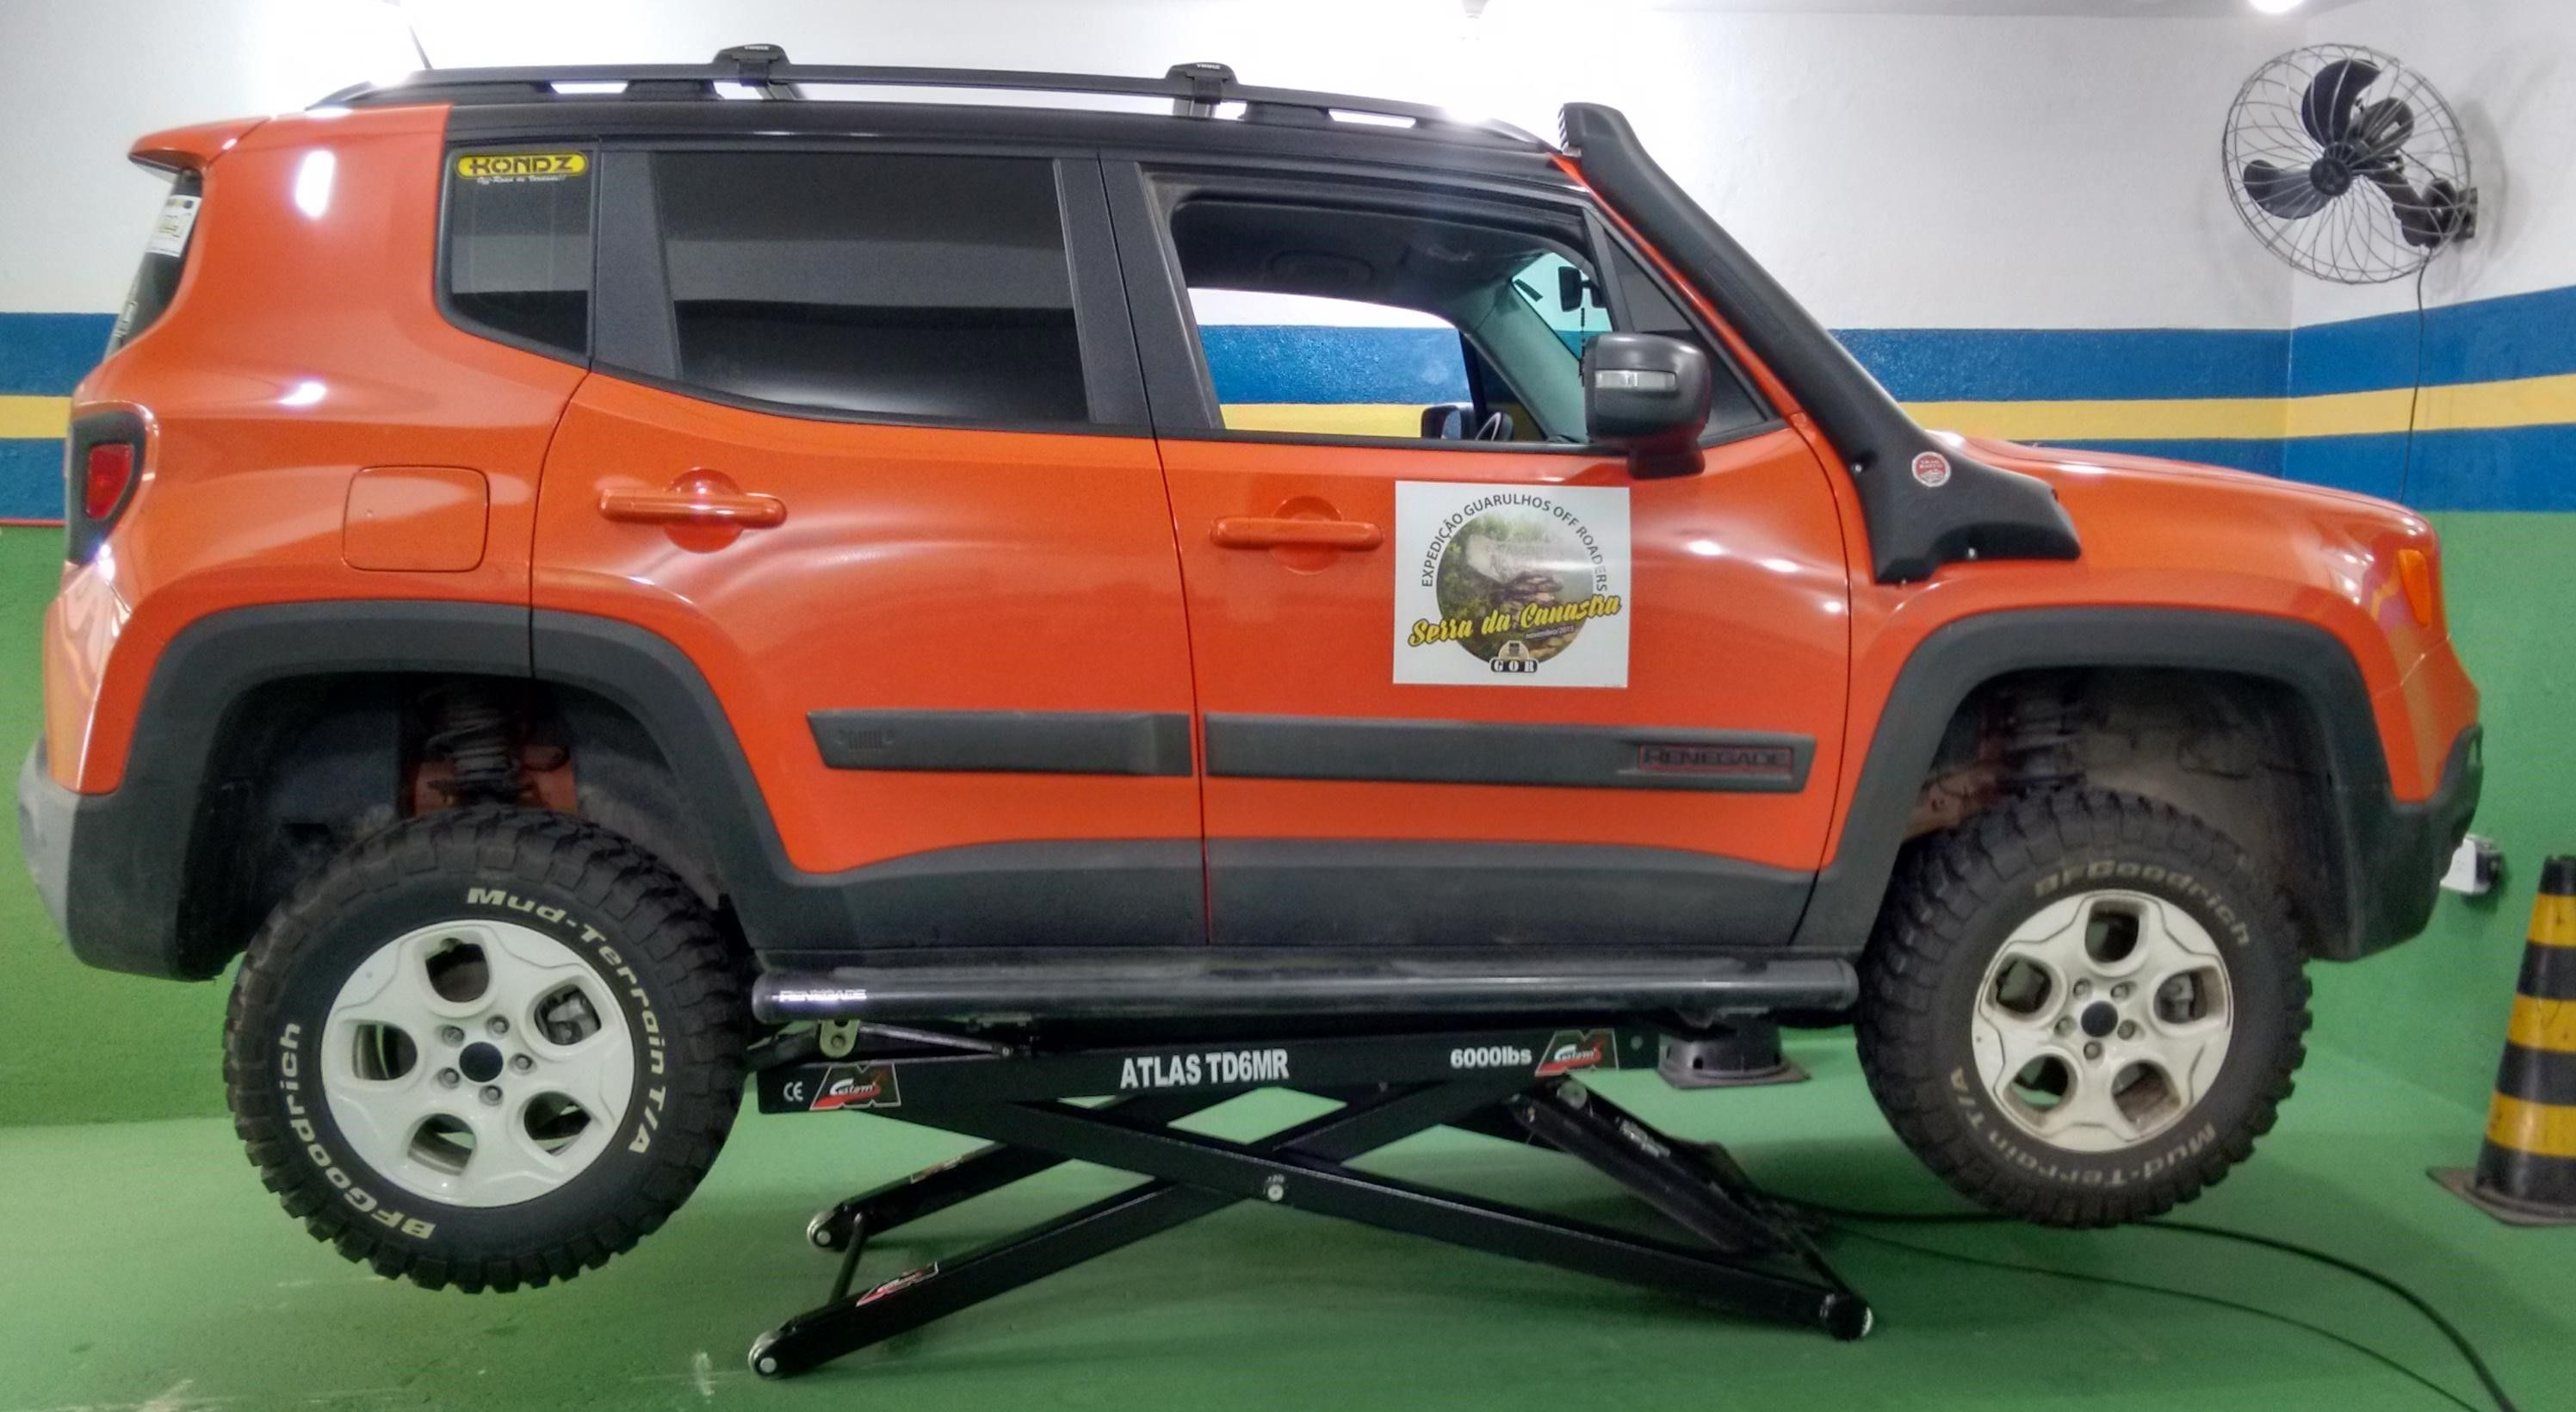 Bike Rack For Jeep Renegade >> 100+ [ Jeep Renegade Trailhawk Lifted ] | Roof Rack And Tool Mounts 2014 Jeep Cherokee Forums ...